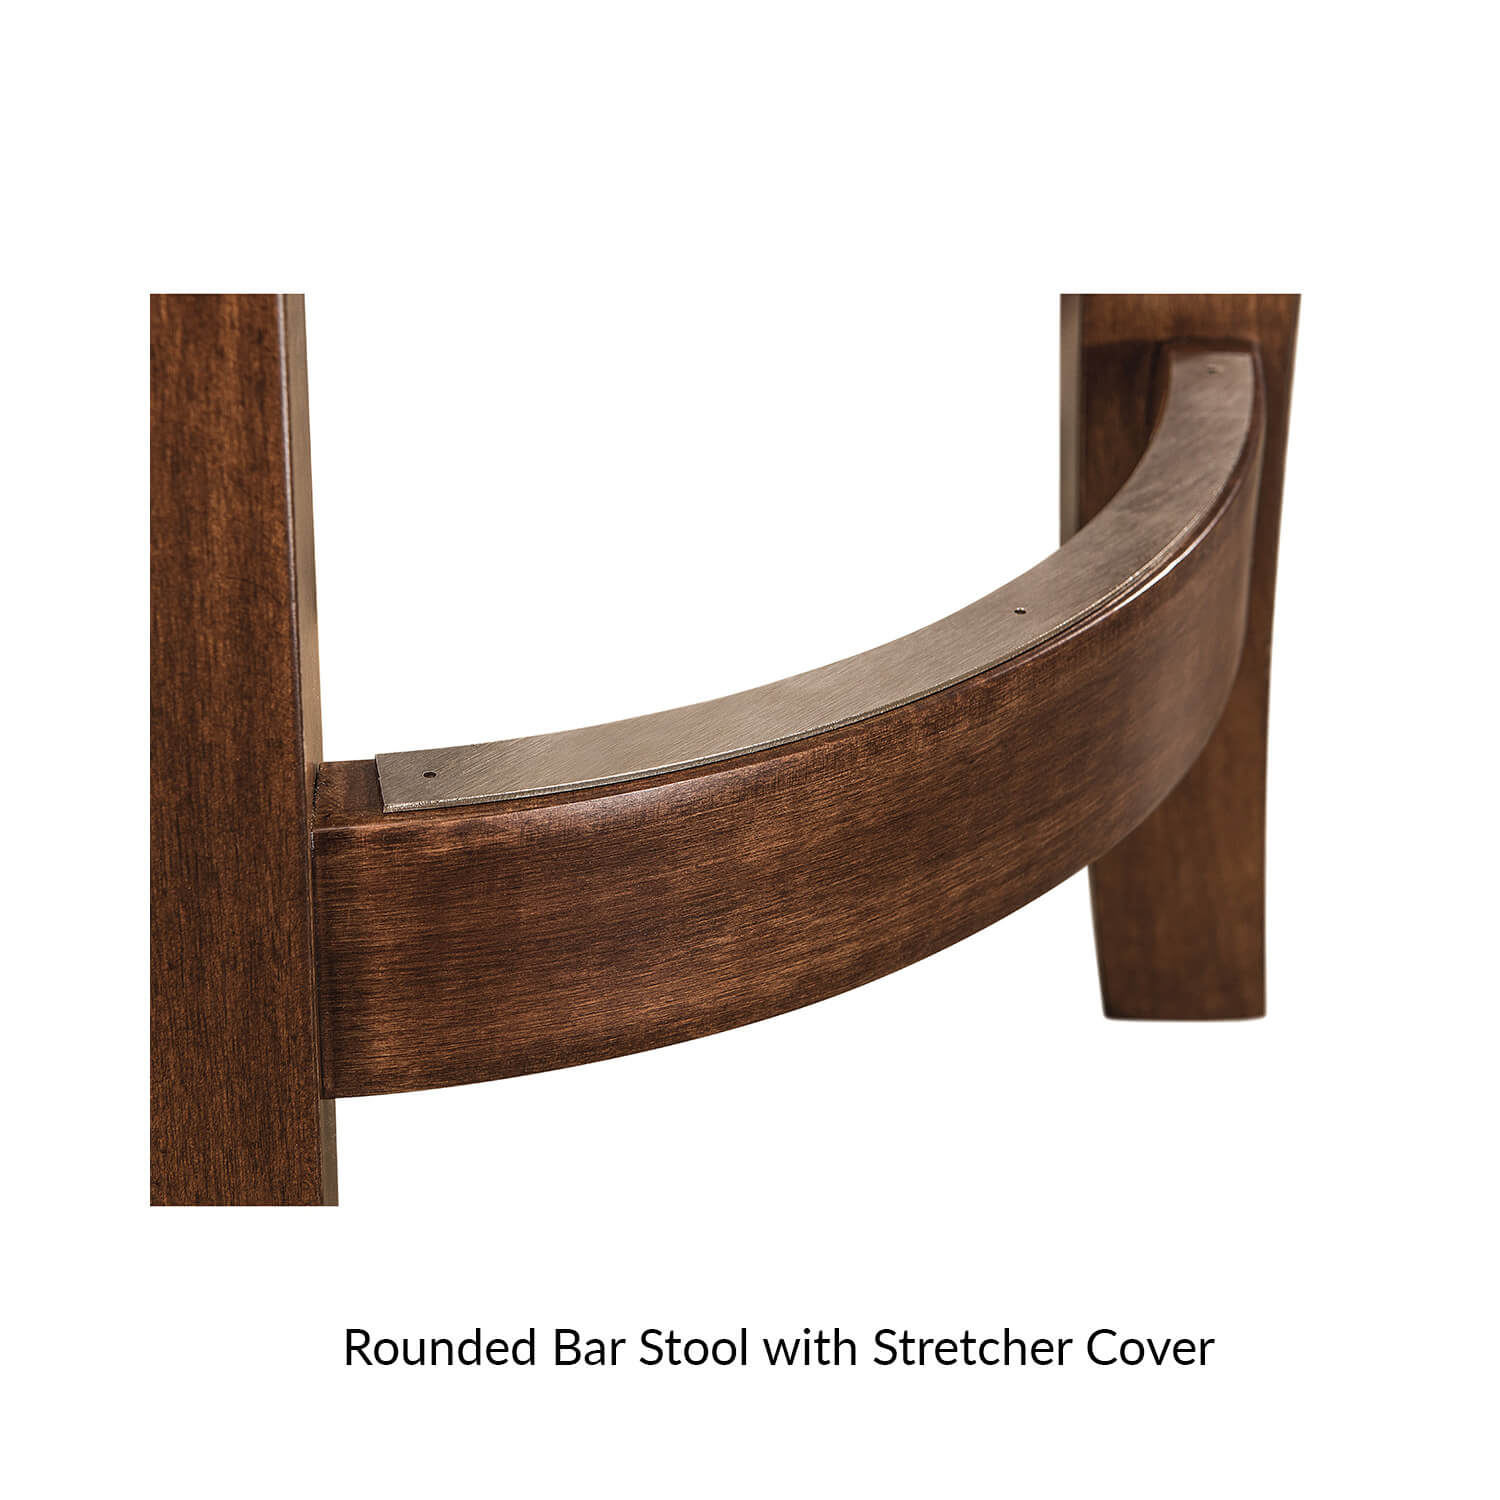 12.-rounded-bar-stool-with-stretcher-cover.jpg